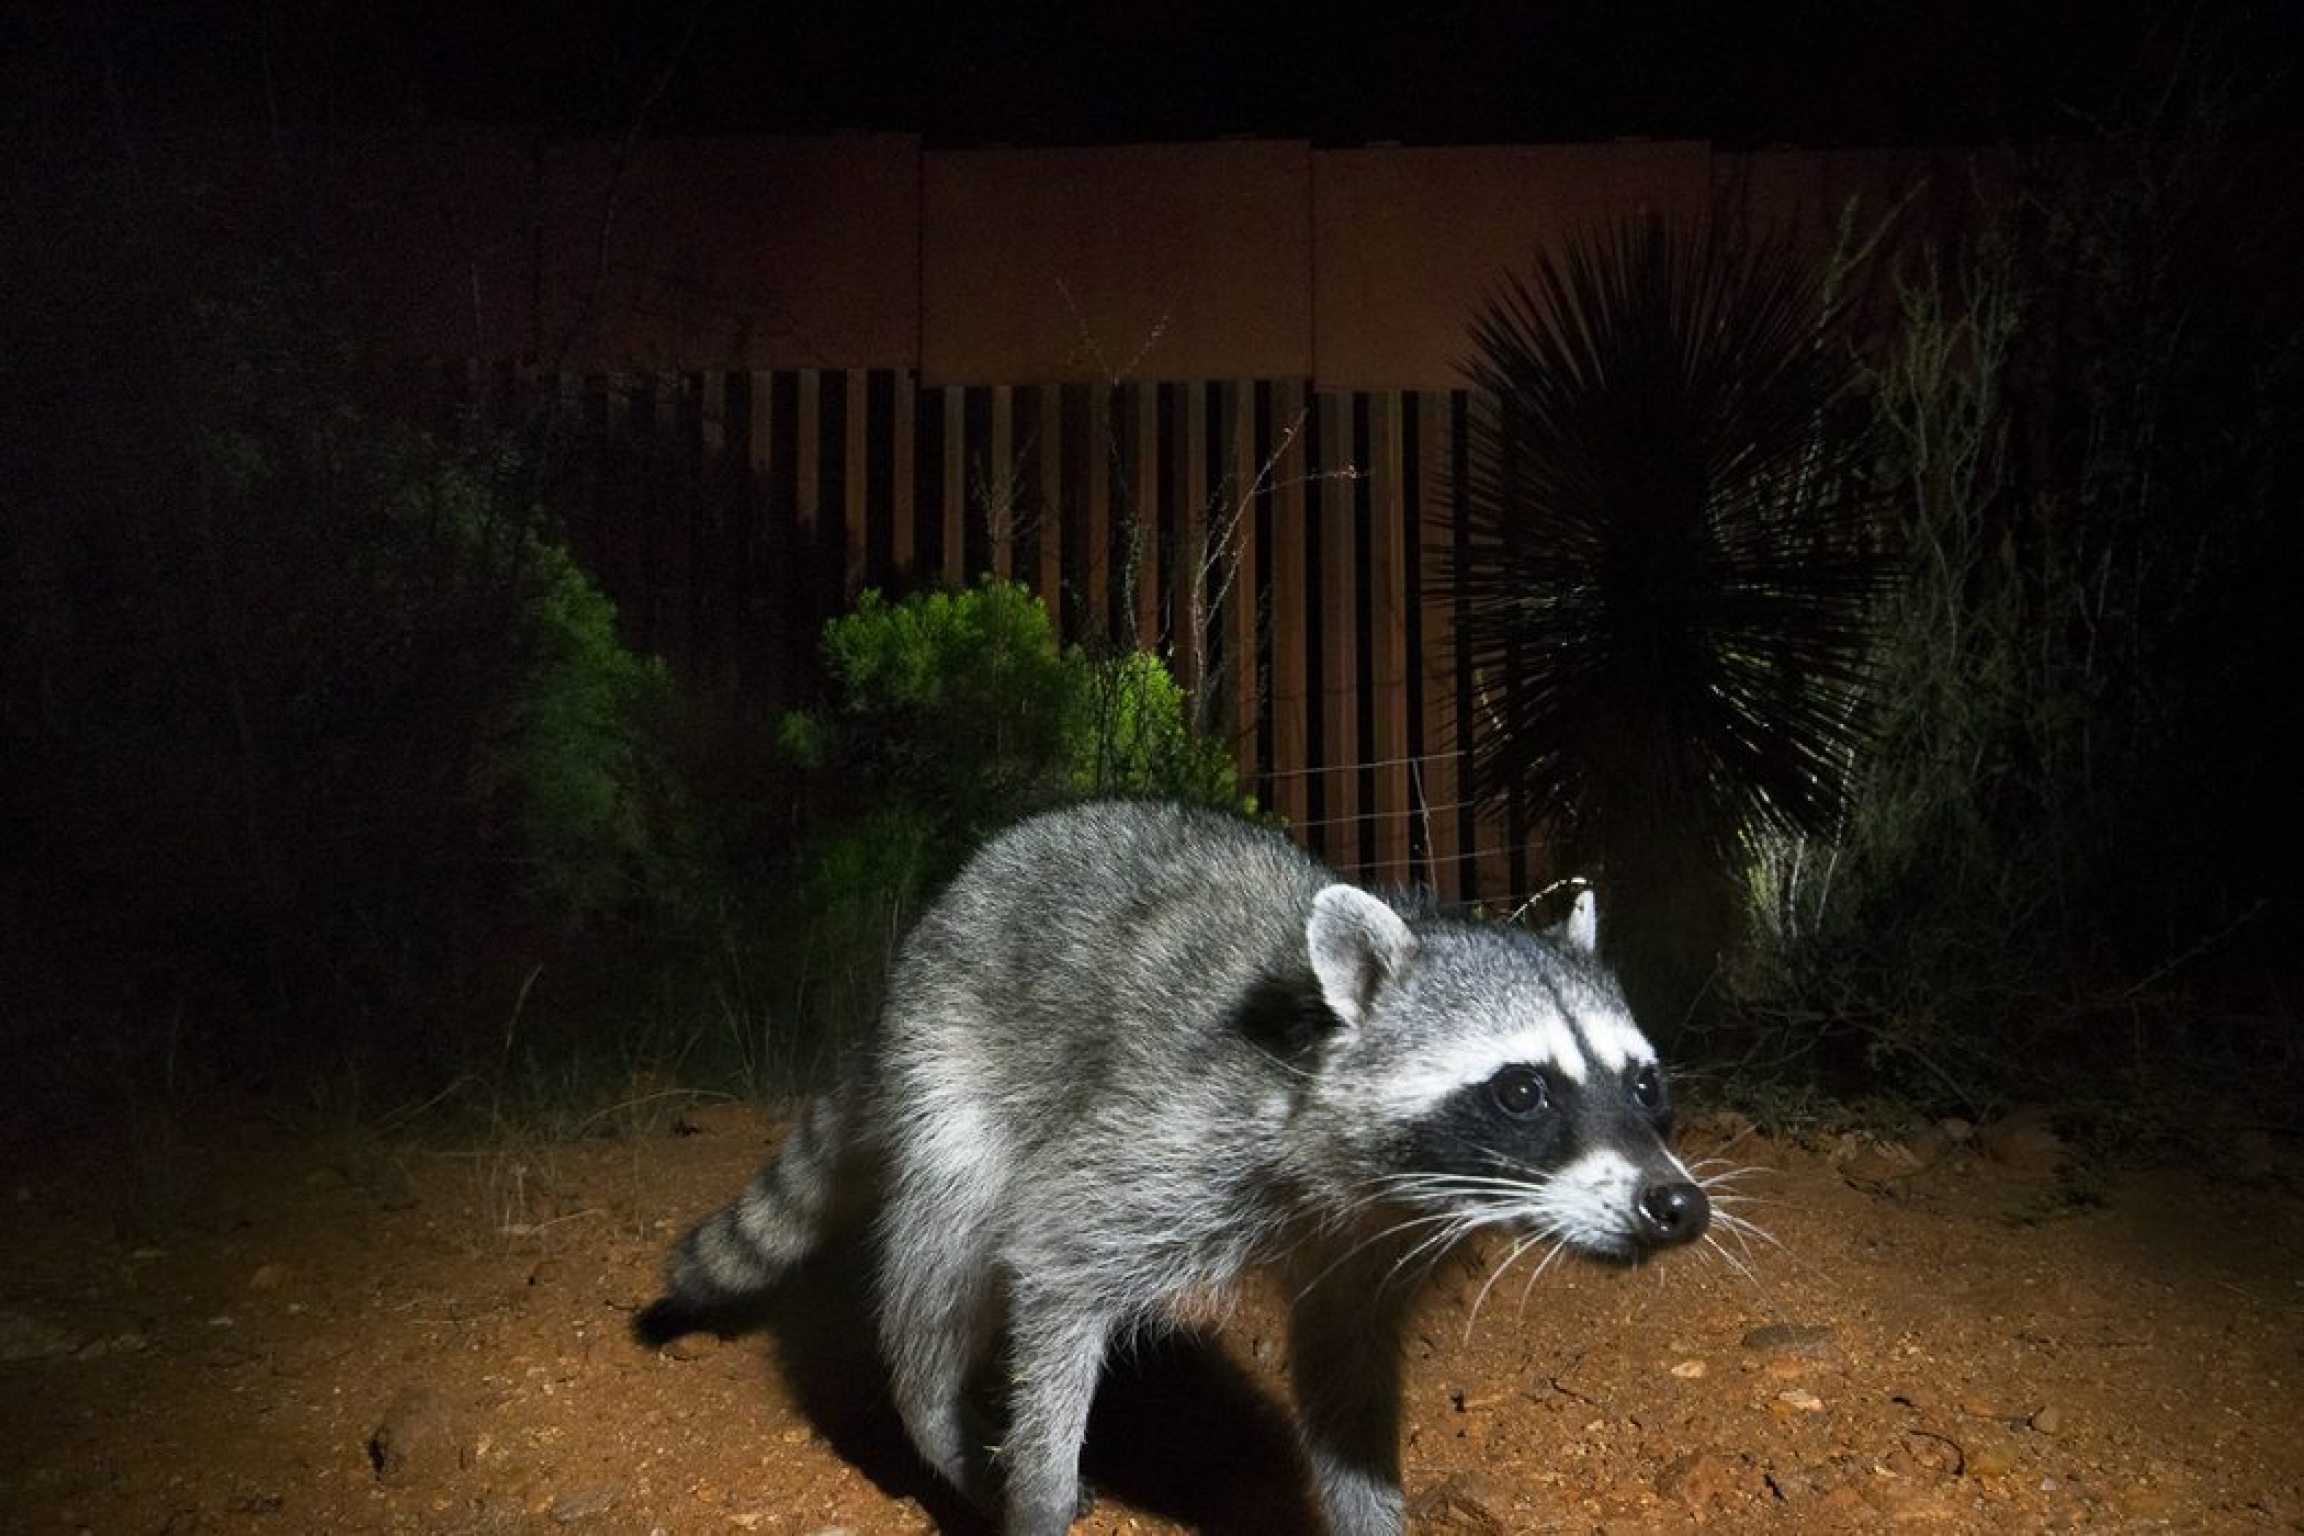 A racoon is illuminated by flash and walking near the US-Mexico border.